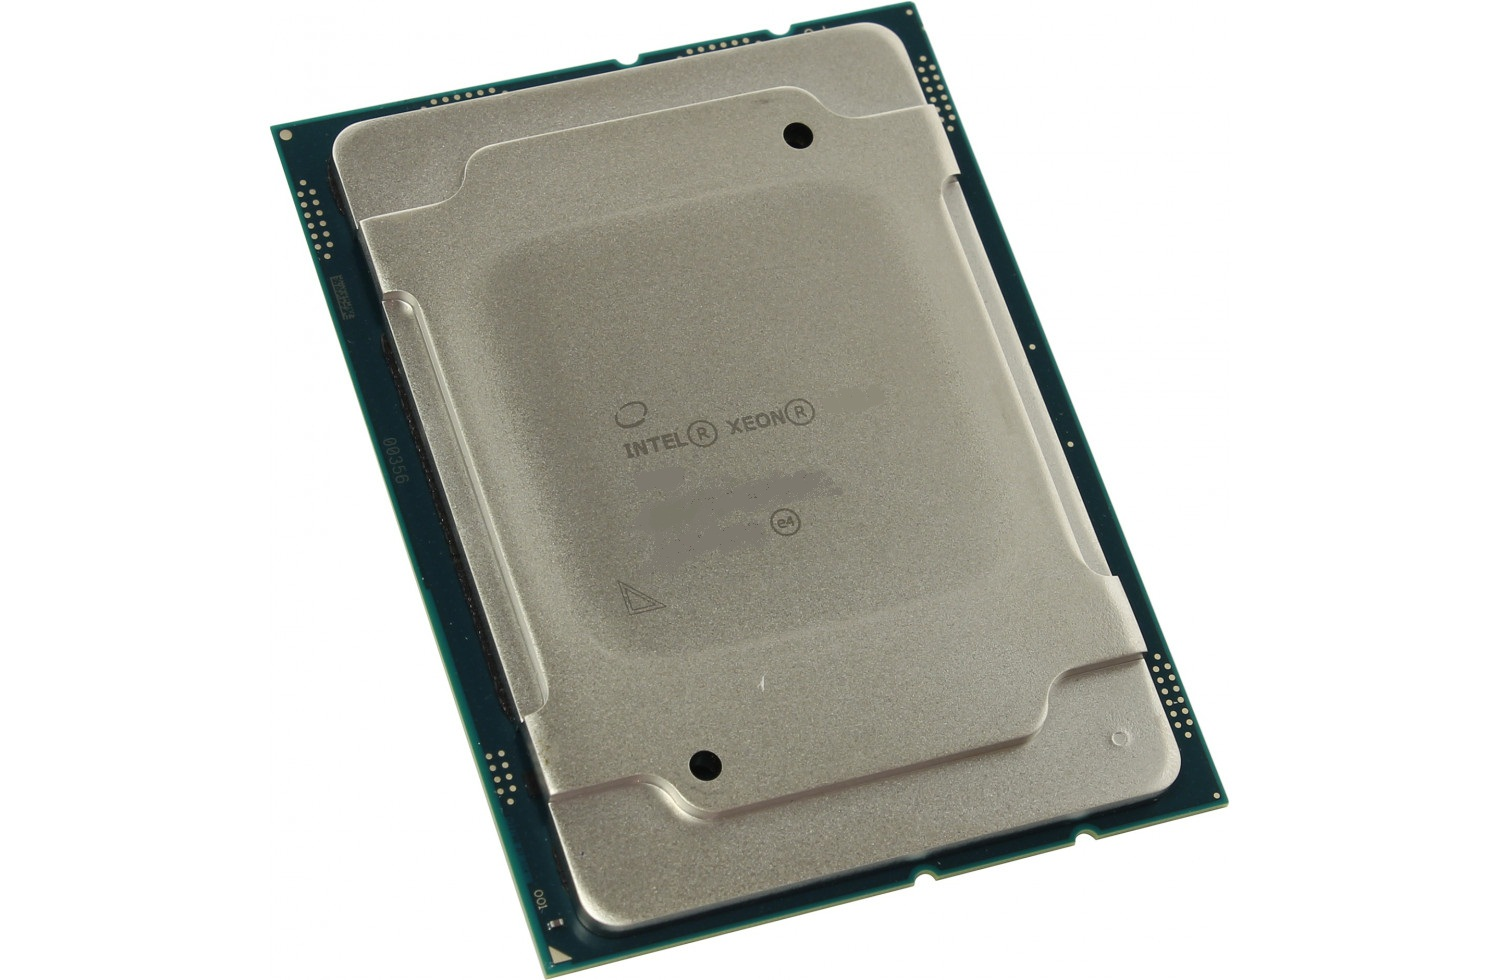 Процессор HPE DL560 Gen10 Intel® Xeon-Gold 6152 (2.1GHz/22-core/135W) Processor Kit